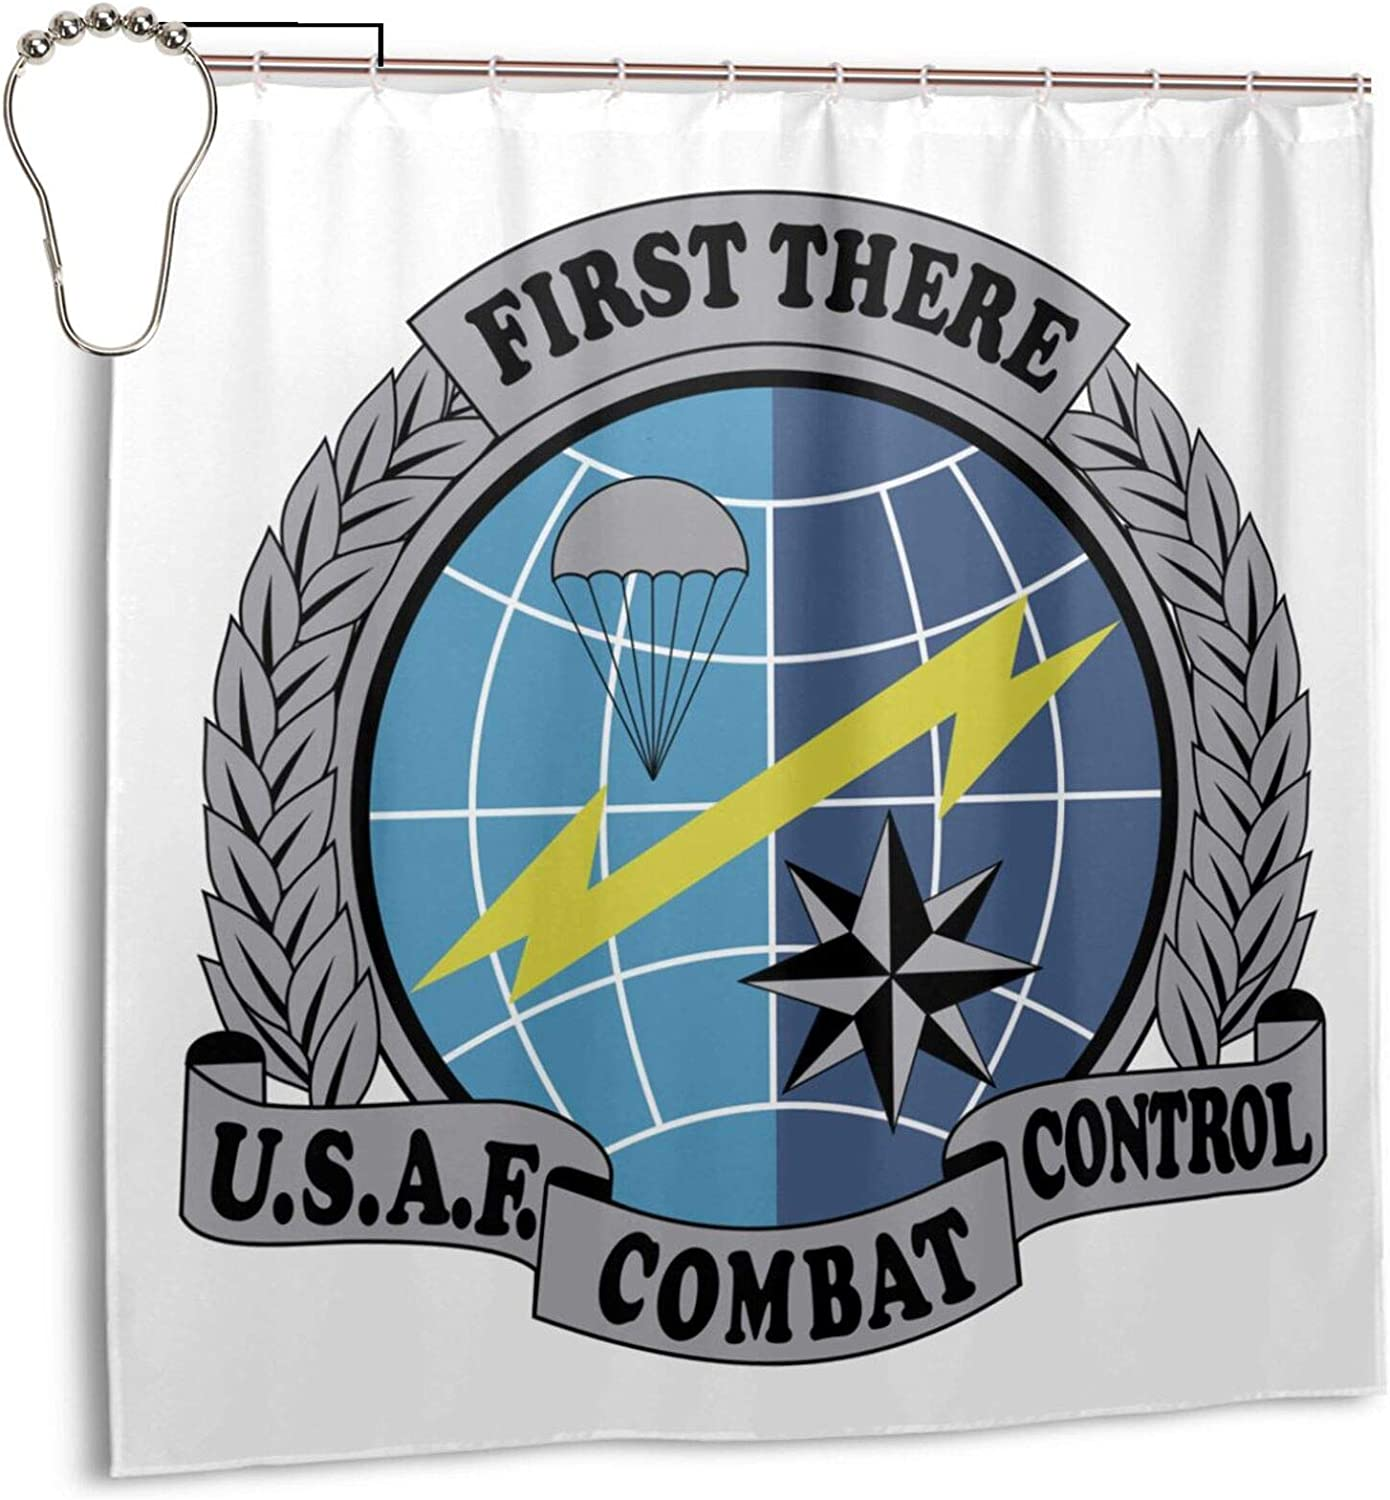 Amazon Com Usaf Combat Control Insignia Polyester Fabric Shower Curtain Bathroom Sets Home Decor 72 X 72 Inches Home Kitchen